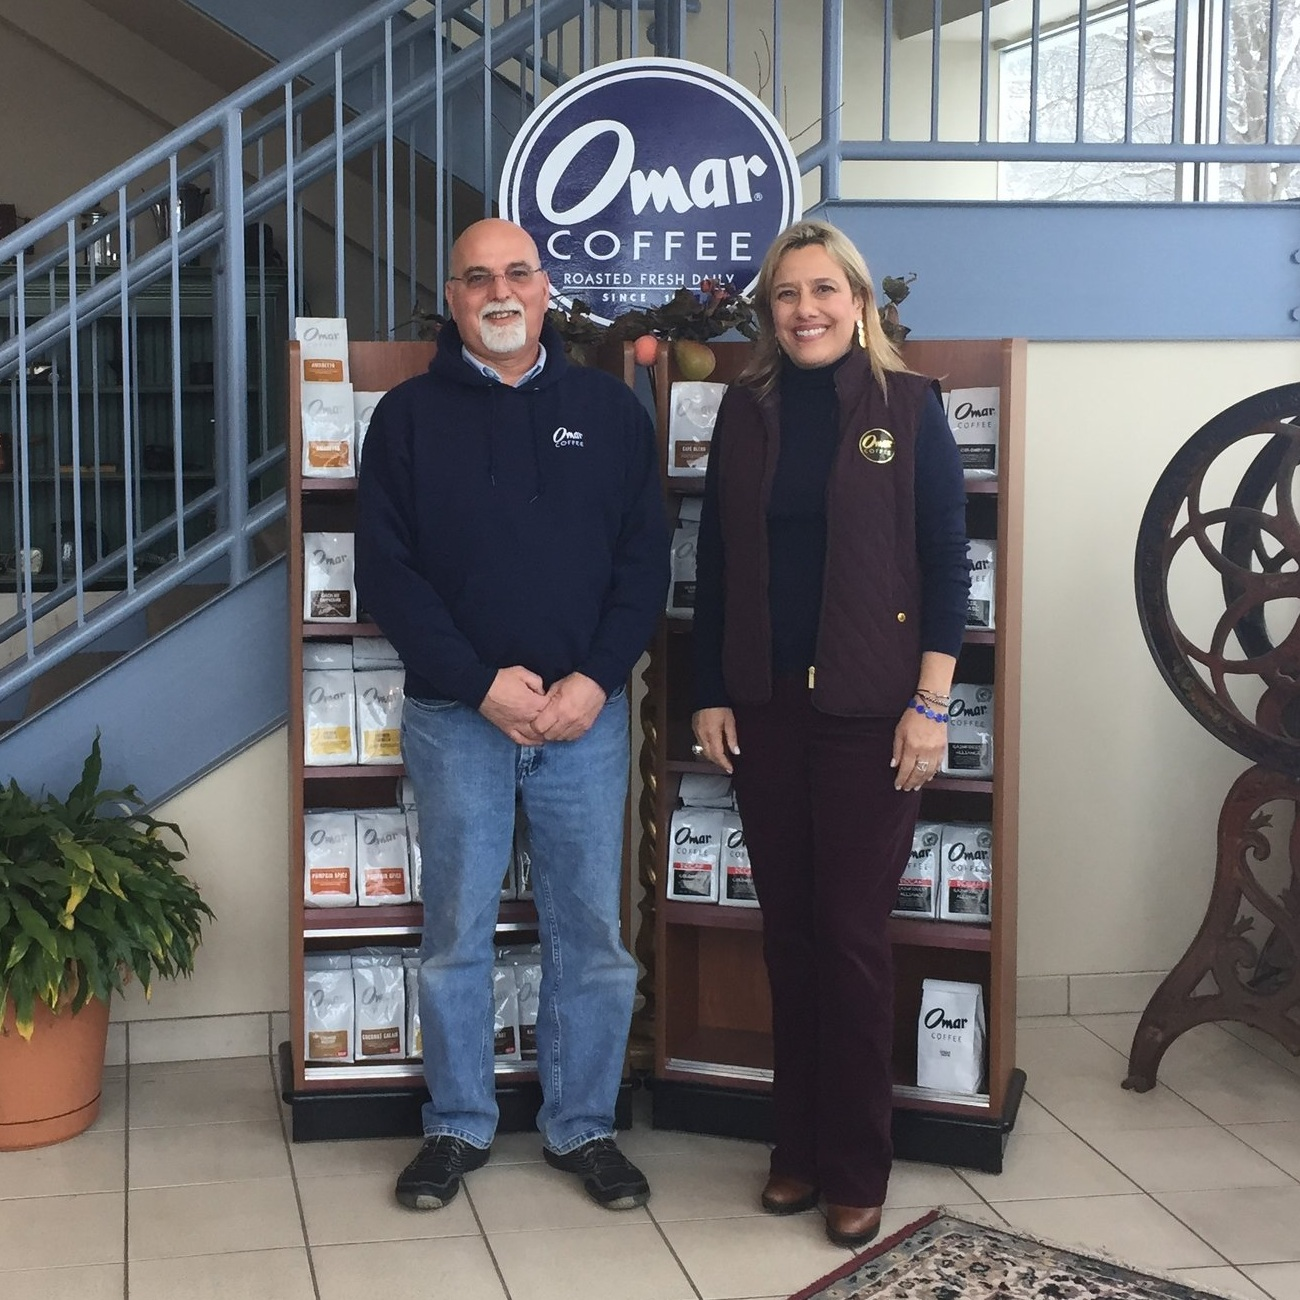 Kevin McDermott (left) and Joanne Lemnios (right) of Omar Coffee